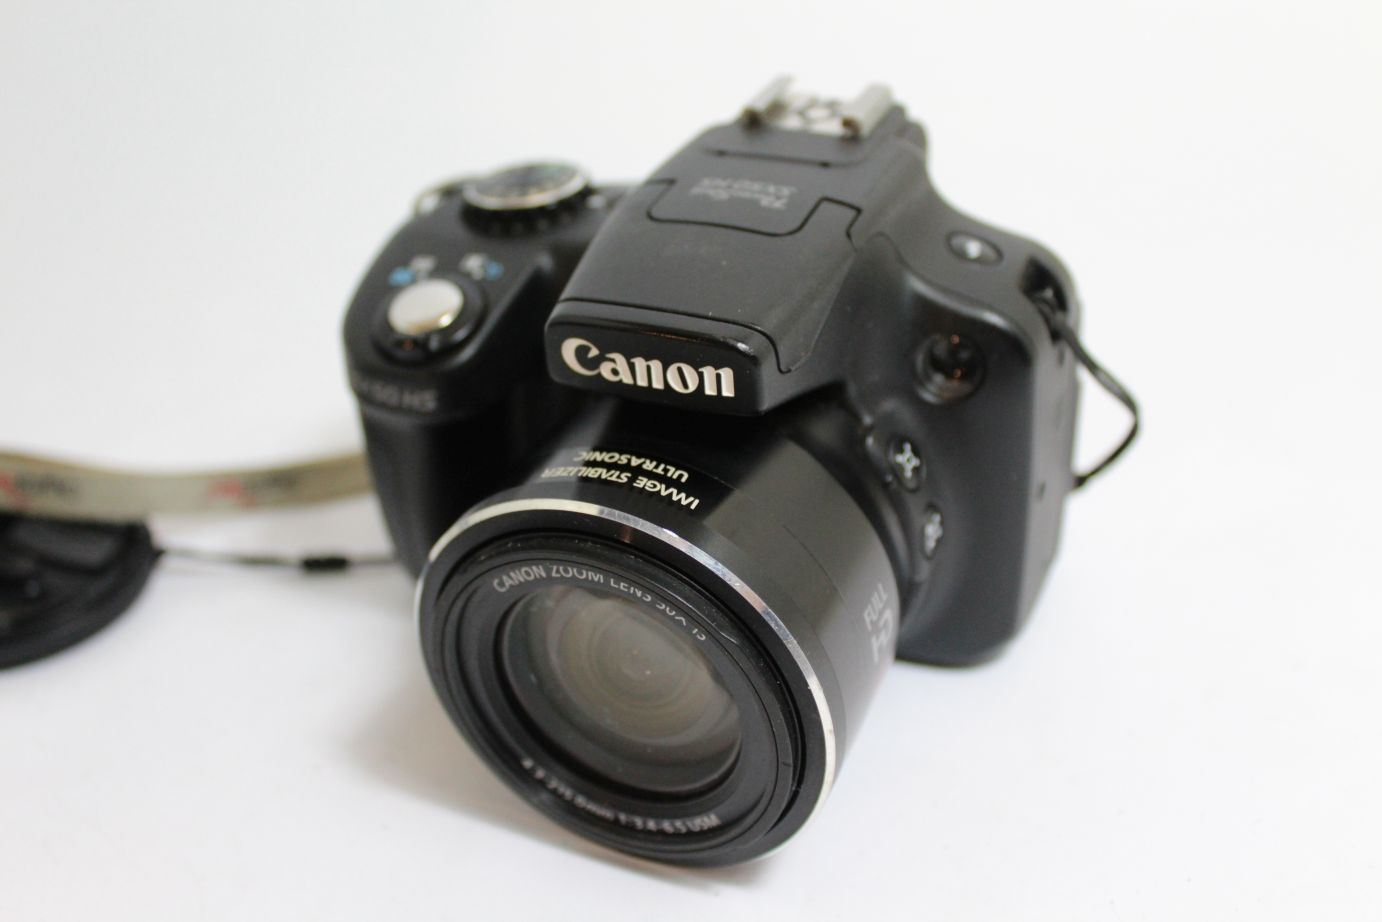 canon powershot sx50 hs digital camera 12 1 mp 50x zoom 2 8 lcd ebay. Black Bedroom Furniture Sets. Home Design Ideas